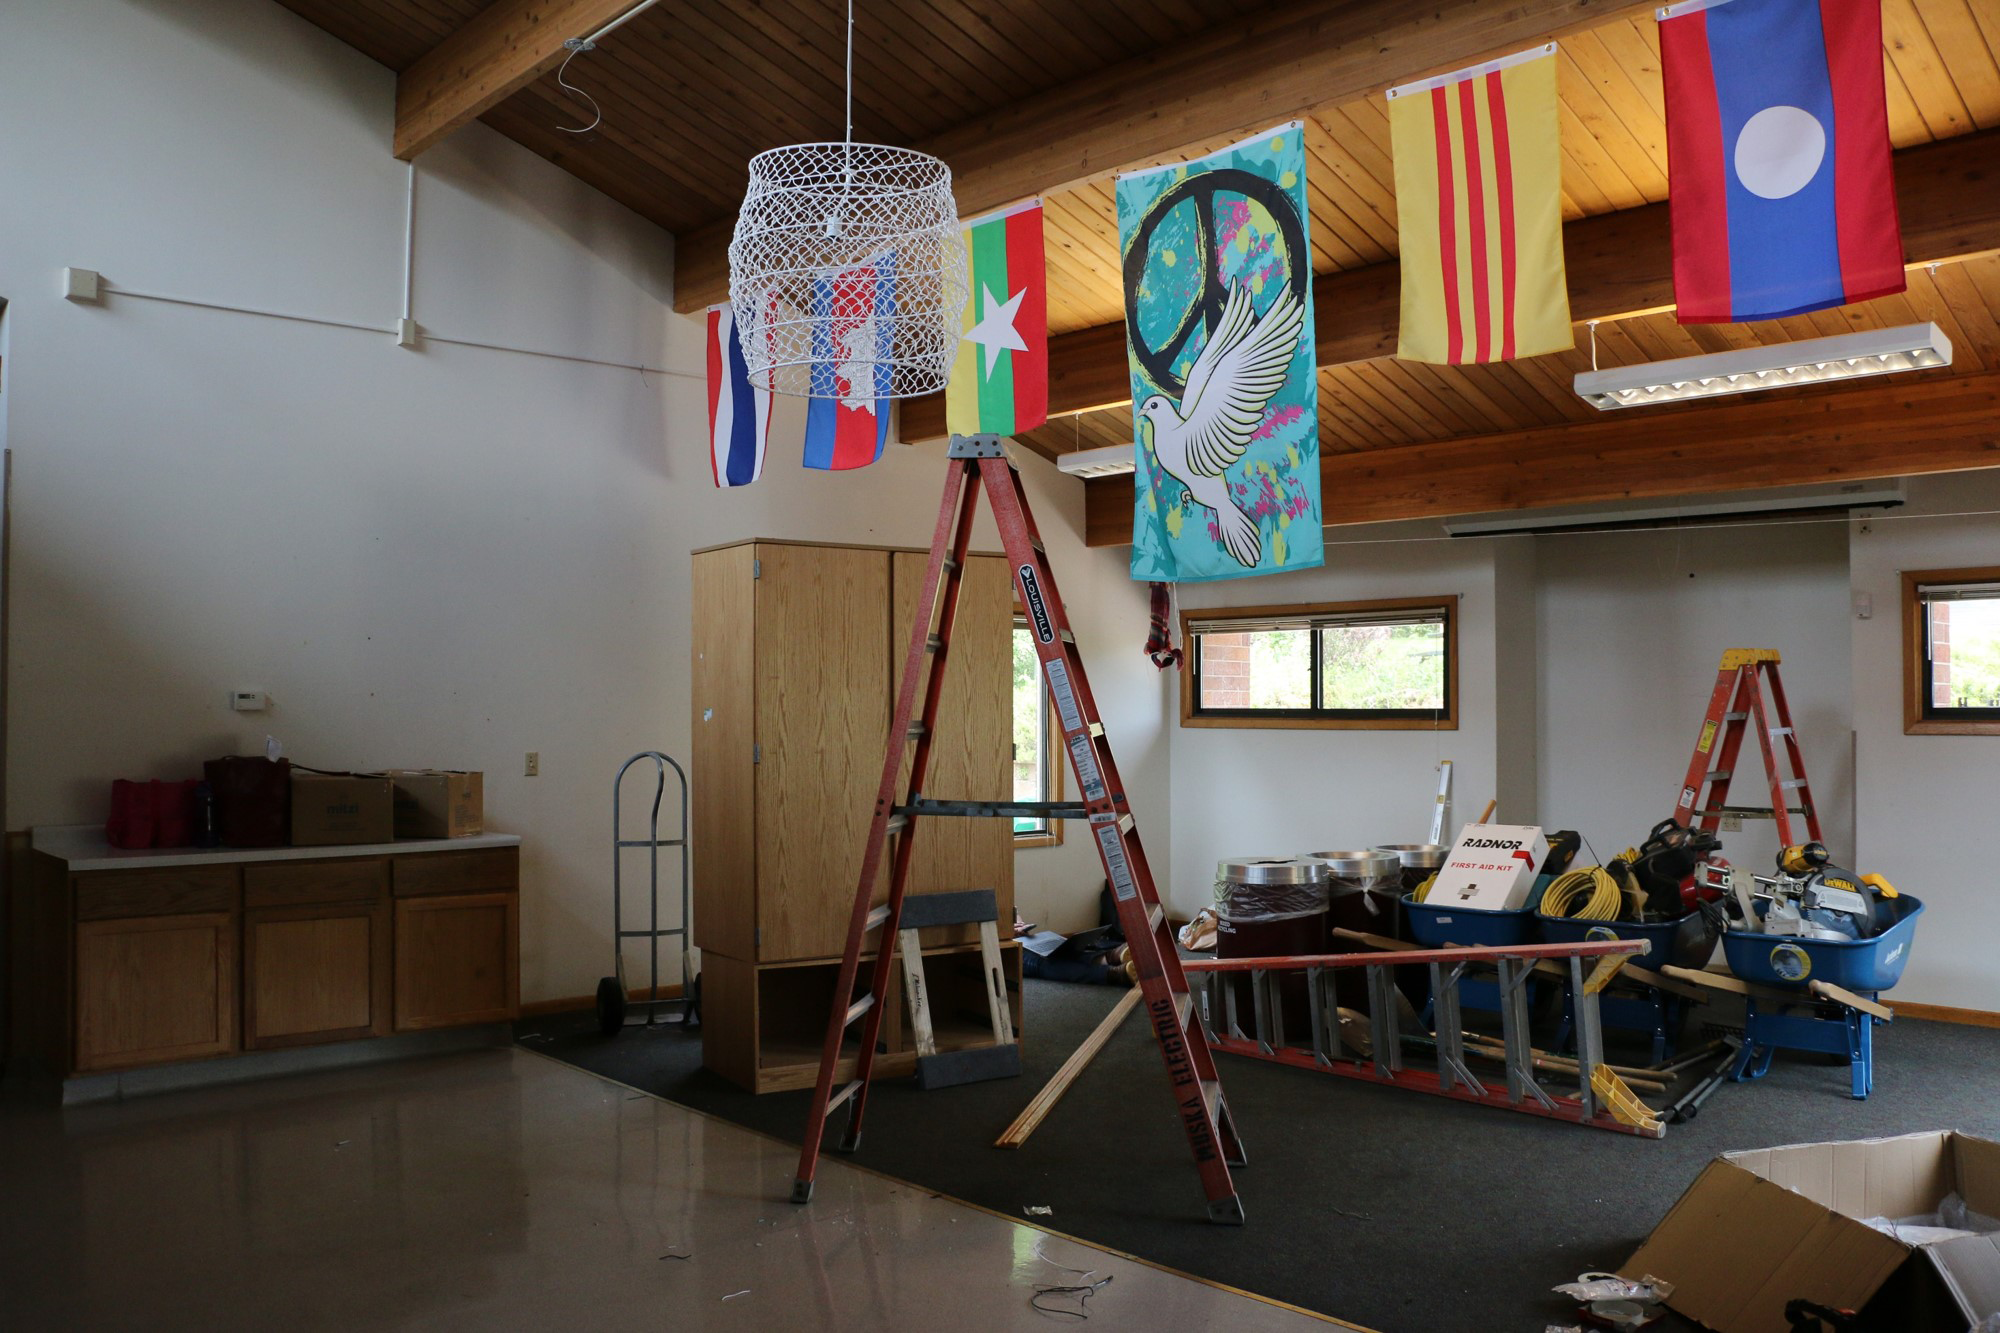 View inside the Center for Social Healing as workers began a remodel of the building